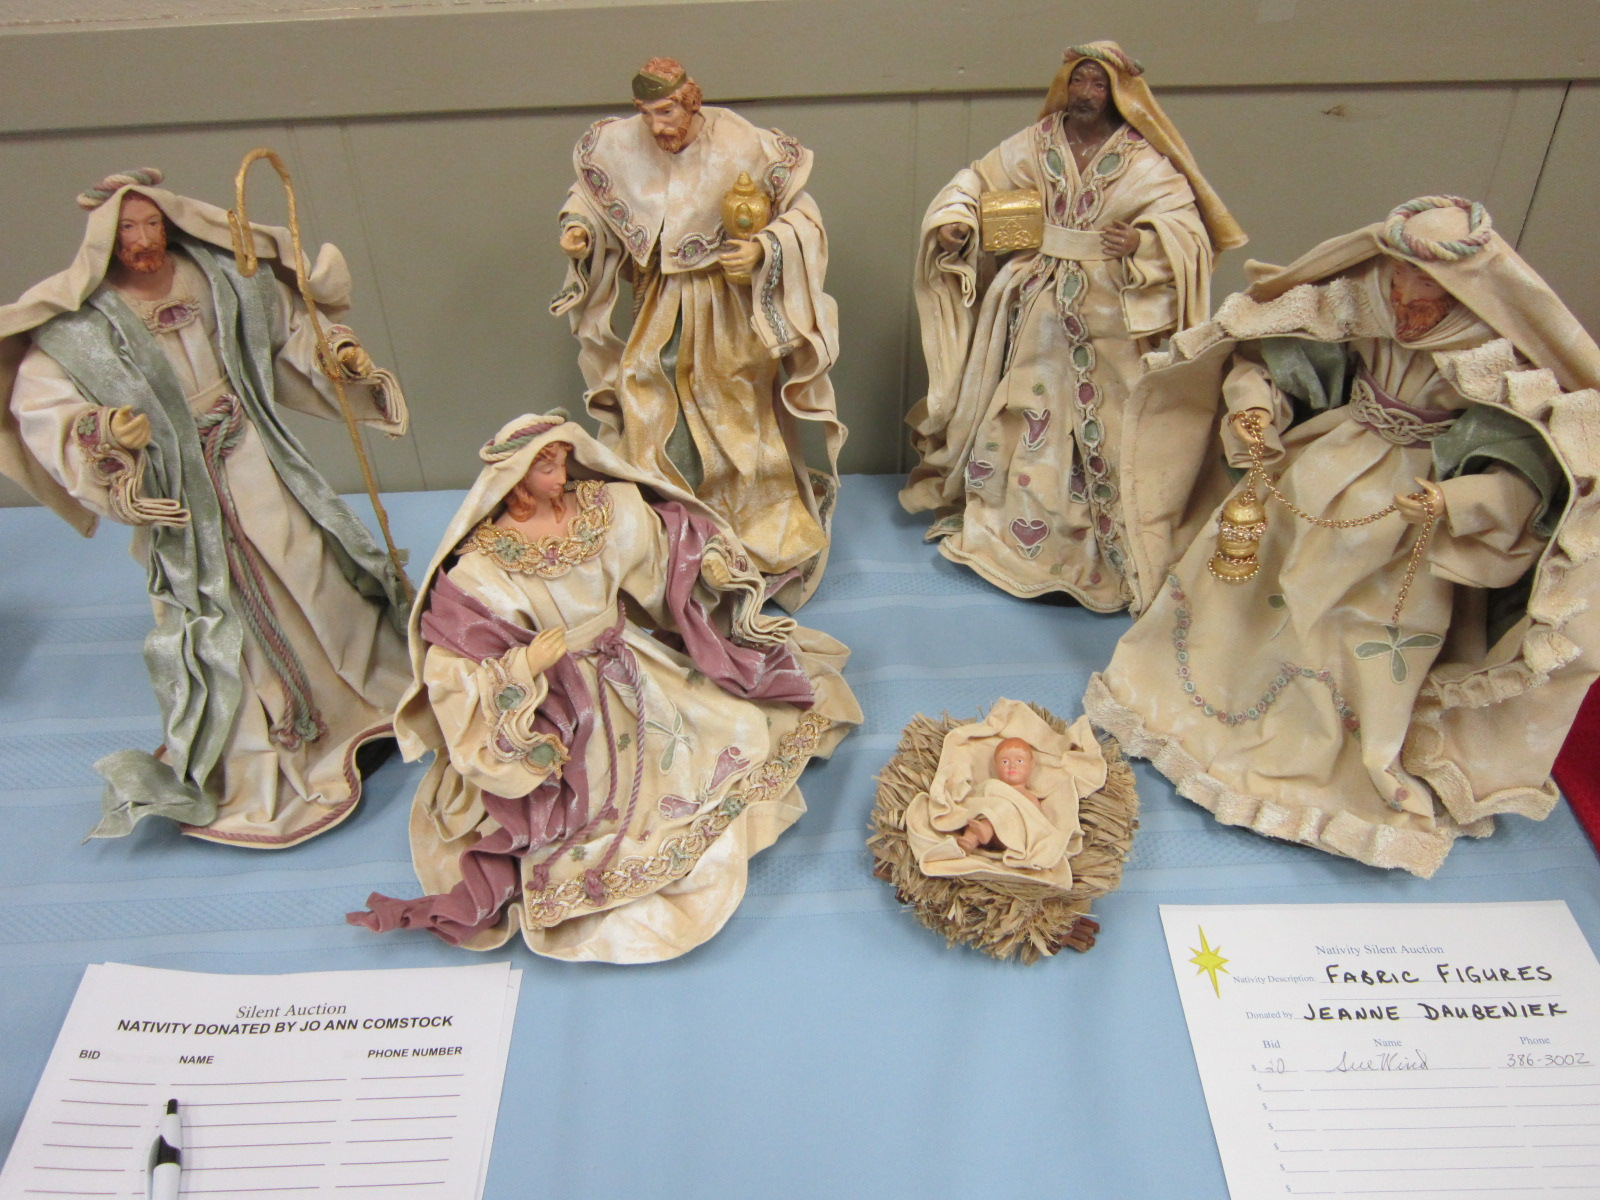 Nativity set fabric figures donated for auction.JPG